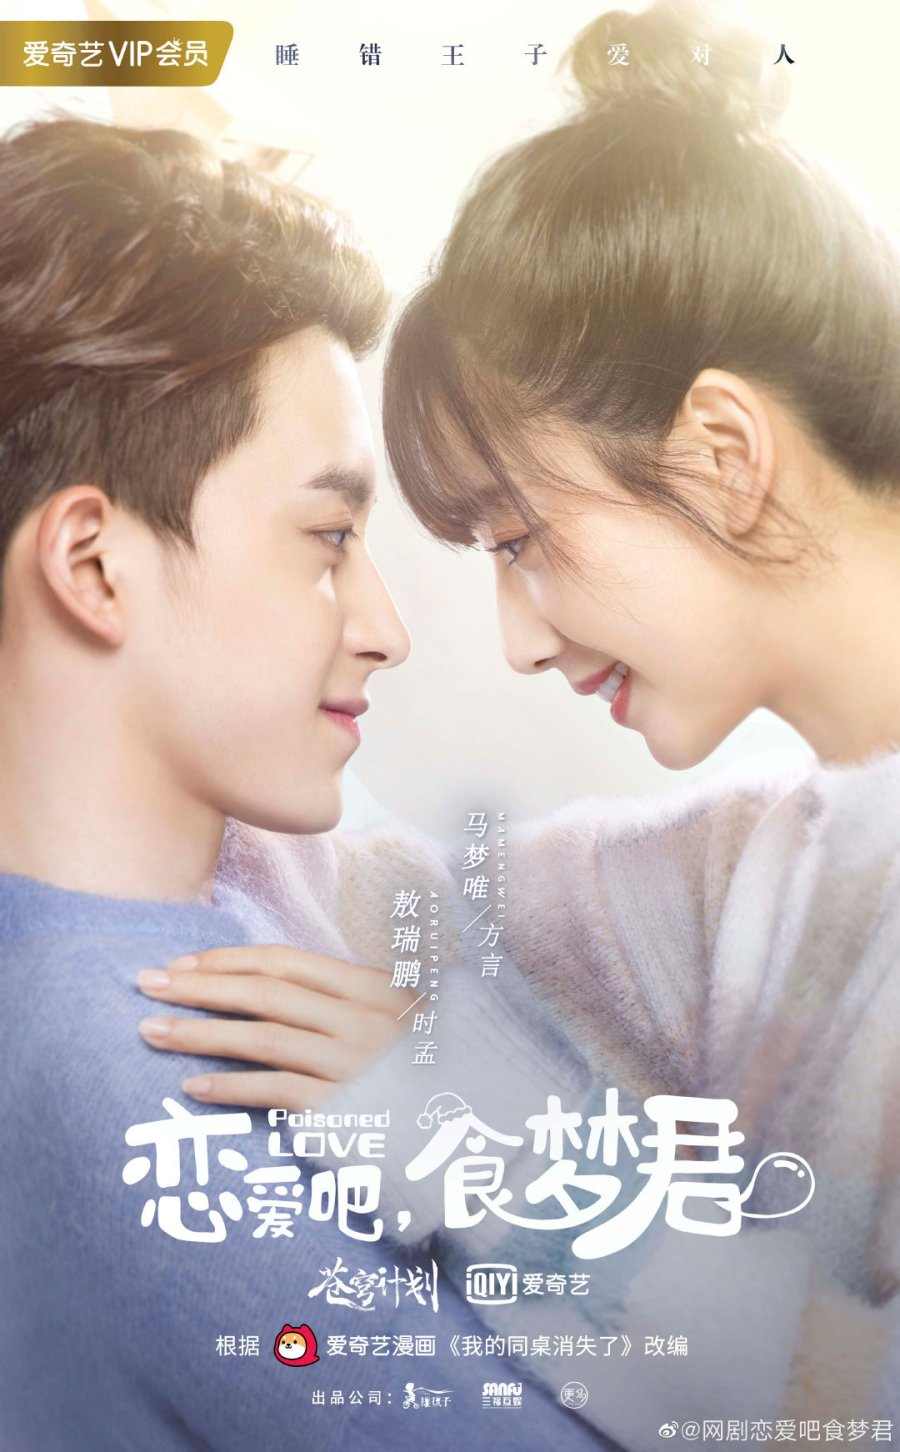 Drama China Poisoned Love (2020) : Sinopsis dan Review